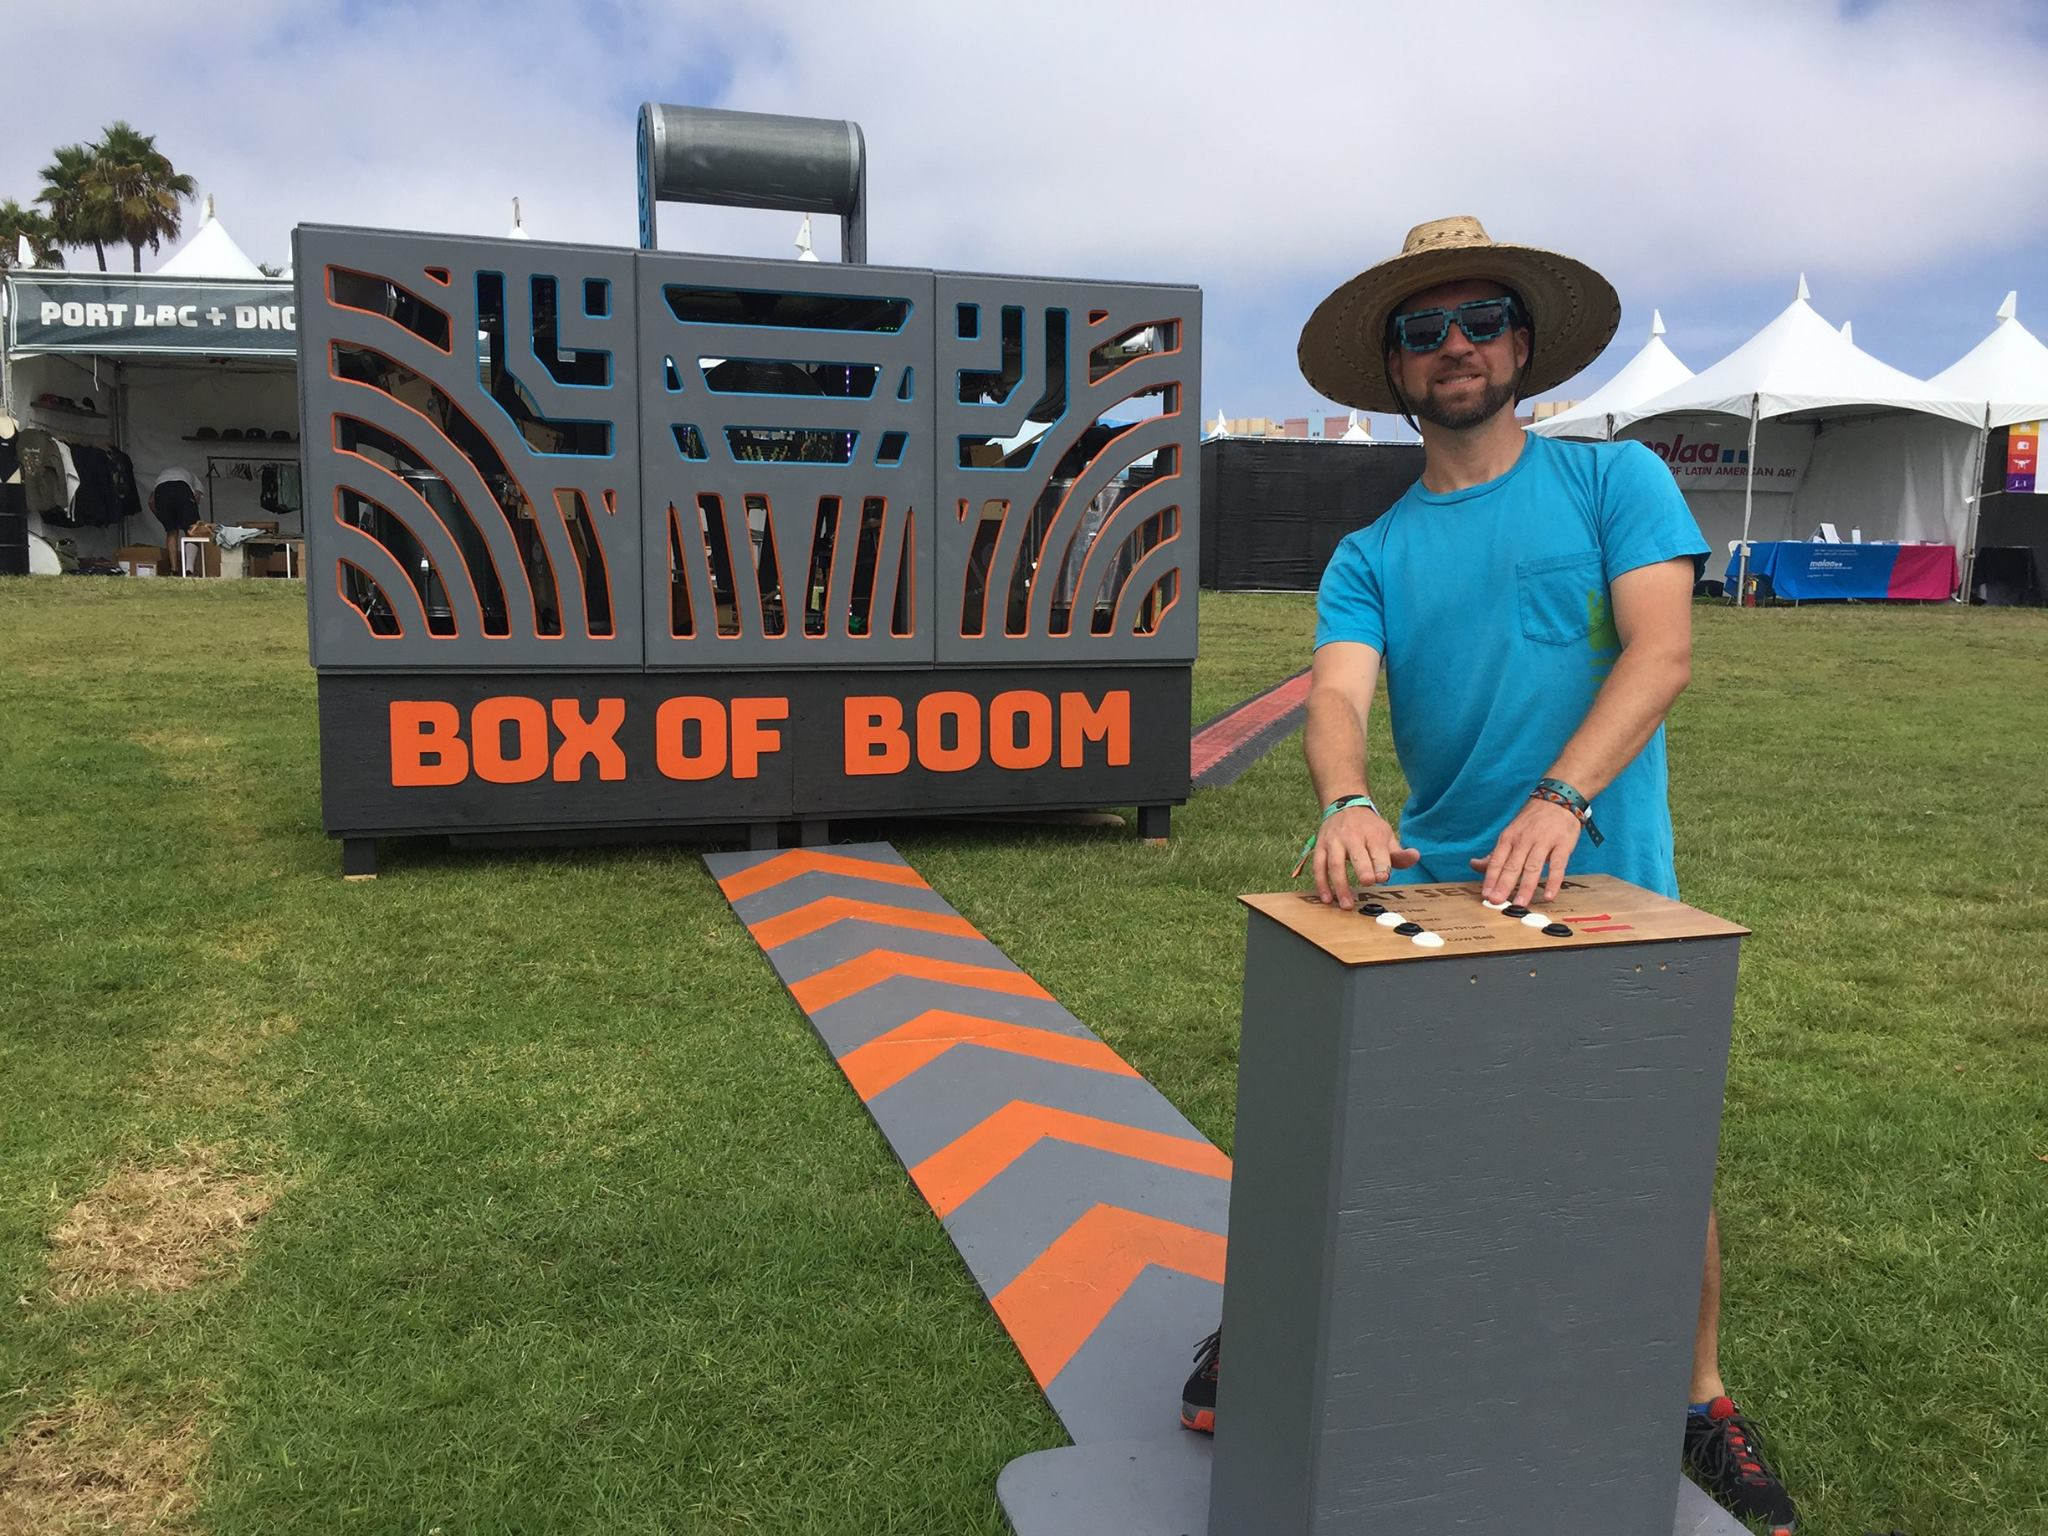 The debut of the Box of Boom at the Music Tastes Good 2017 Festival in Long Beach, CA.